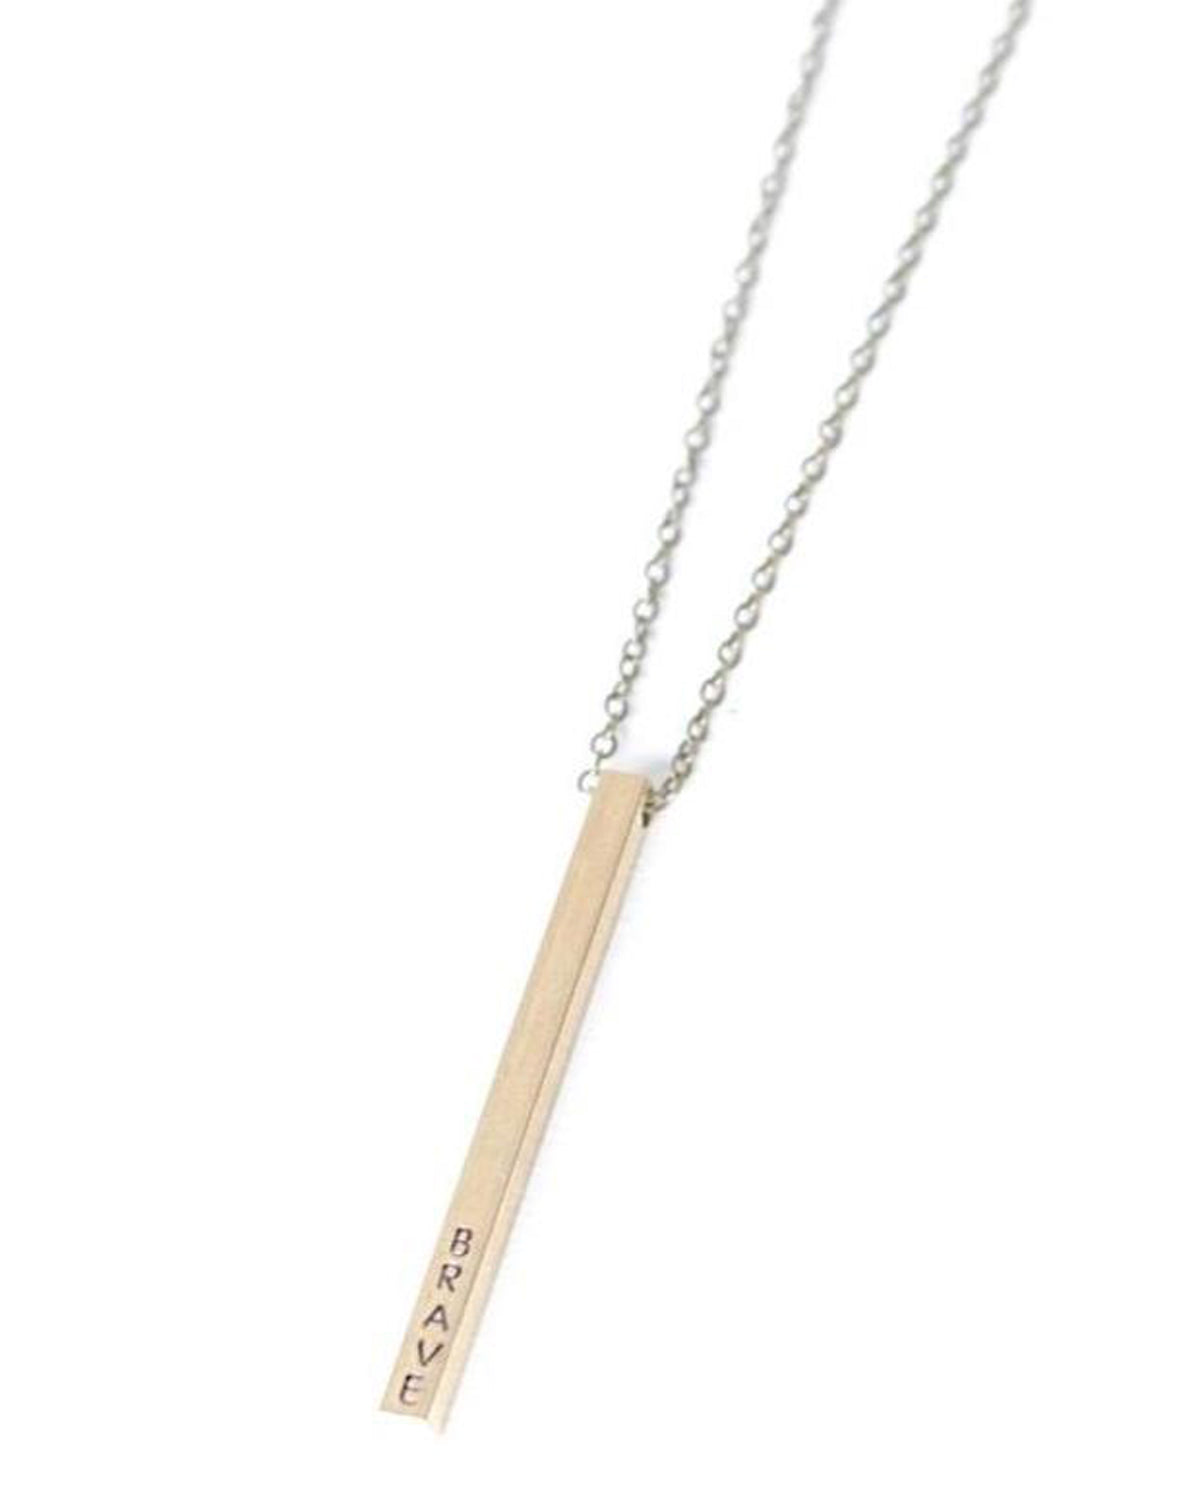 Brave Bar - Necklace